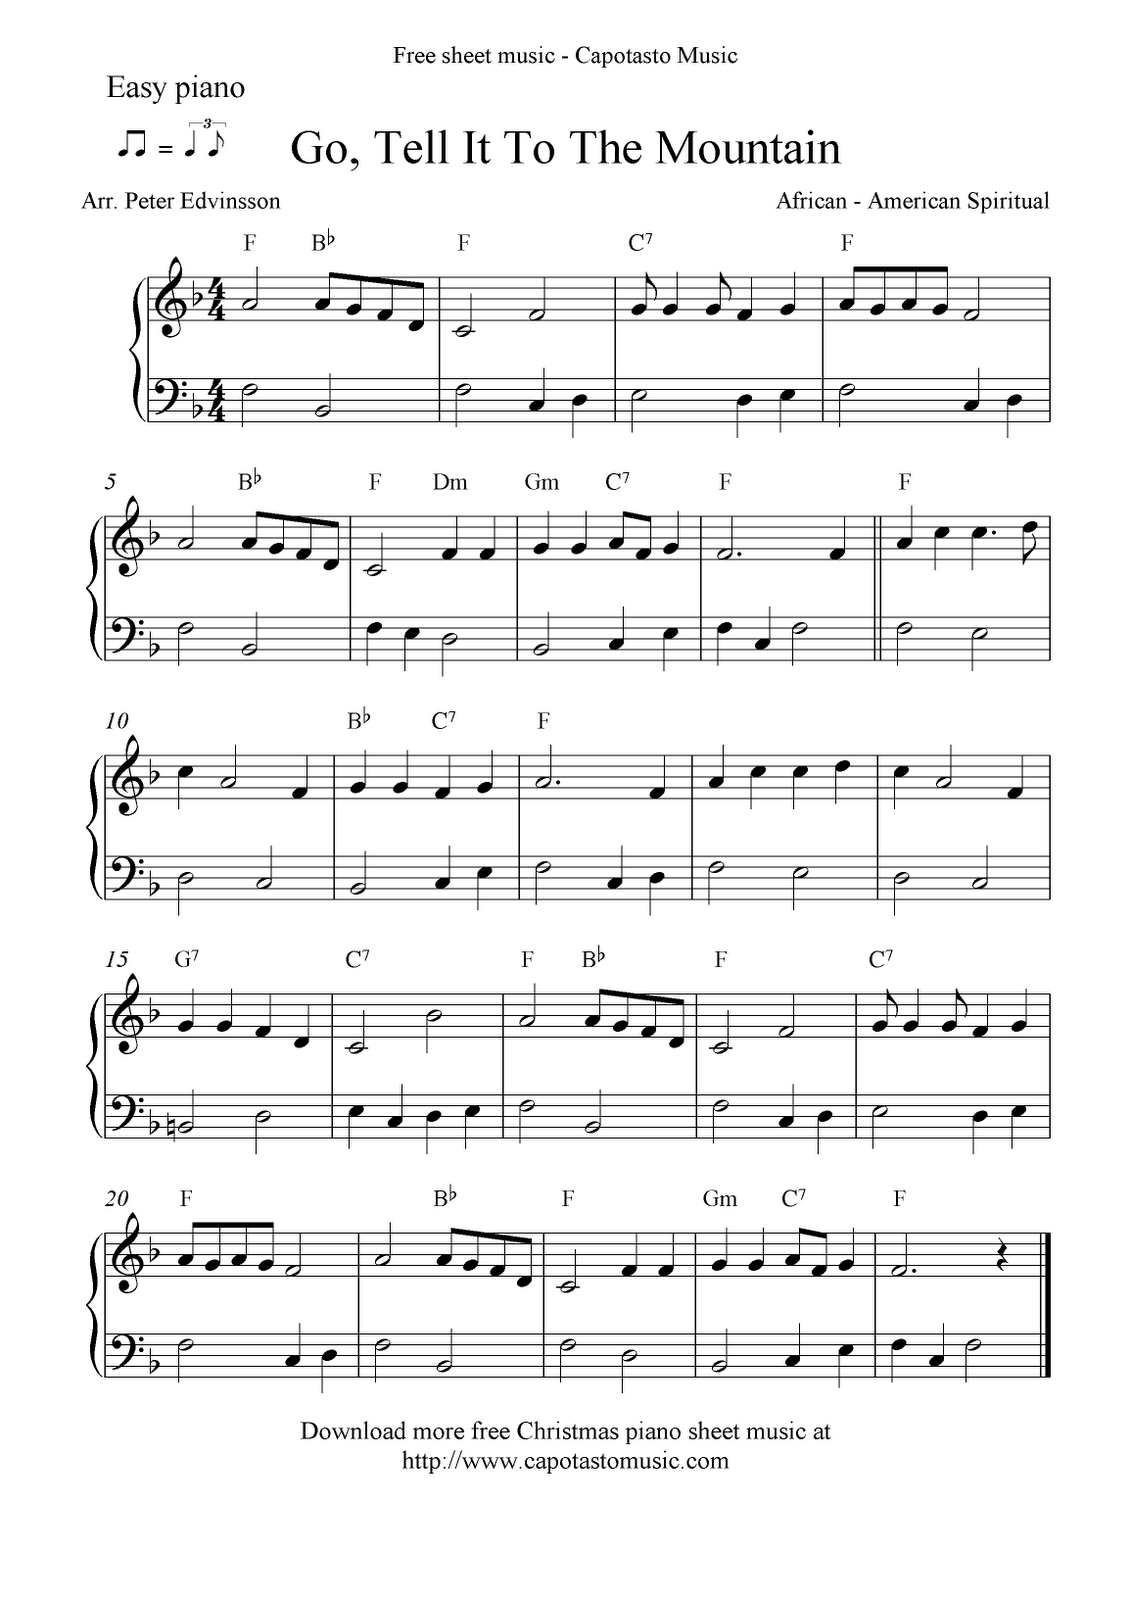 free printable piano sheet music free sheet music scores easy free christmas piano sheet music notes - Free Christmas Piano Sheet Music